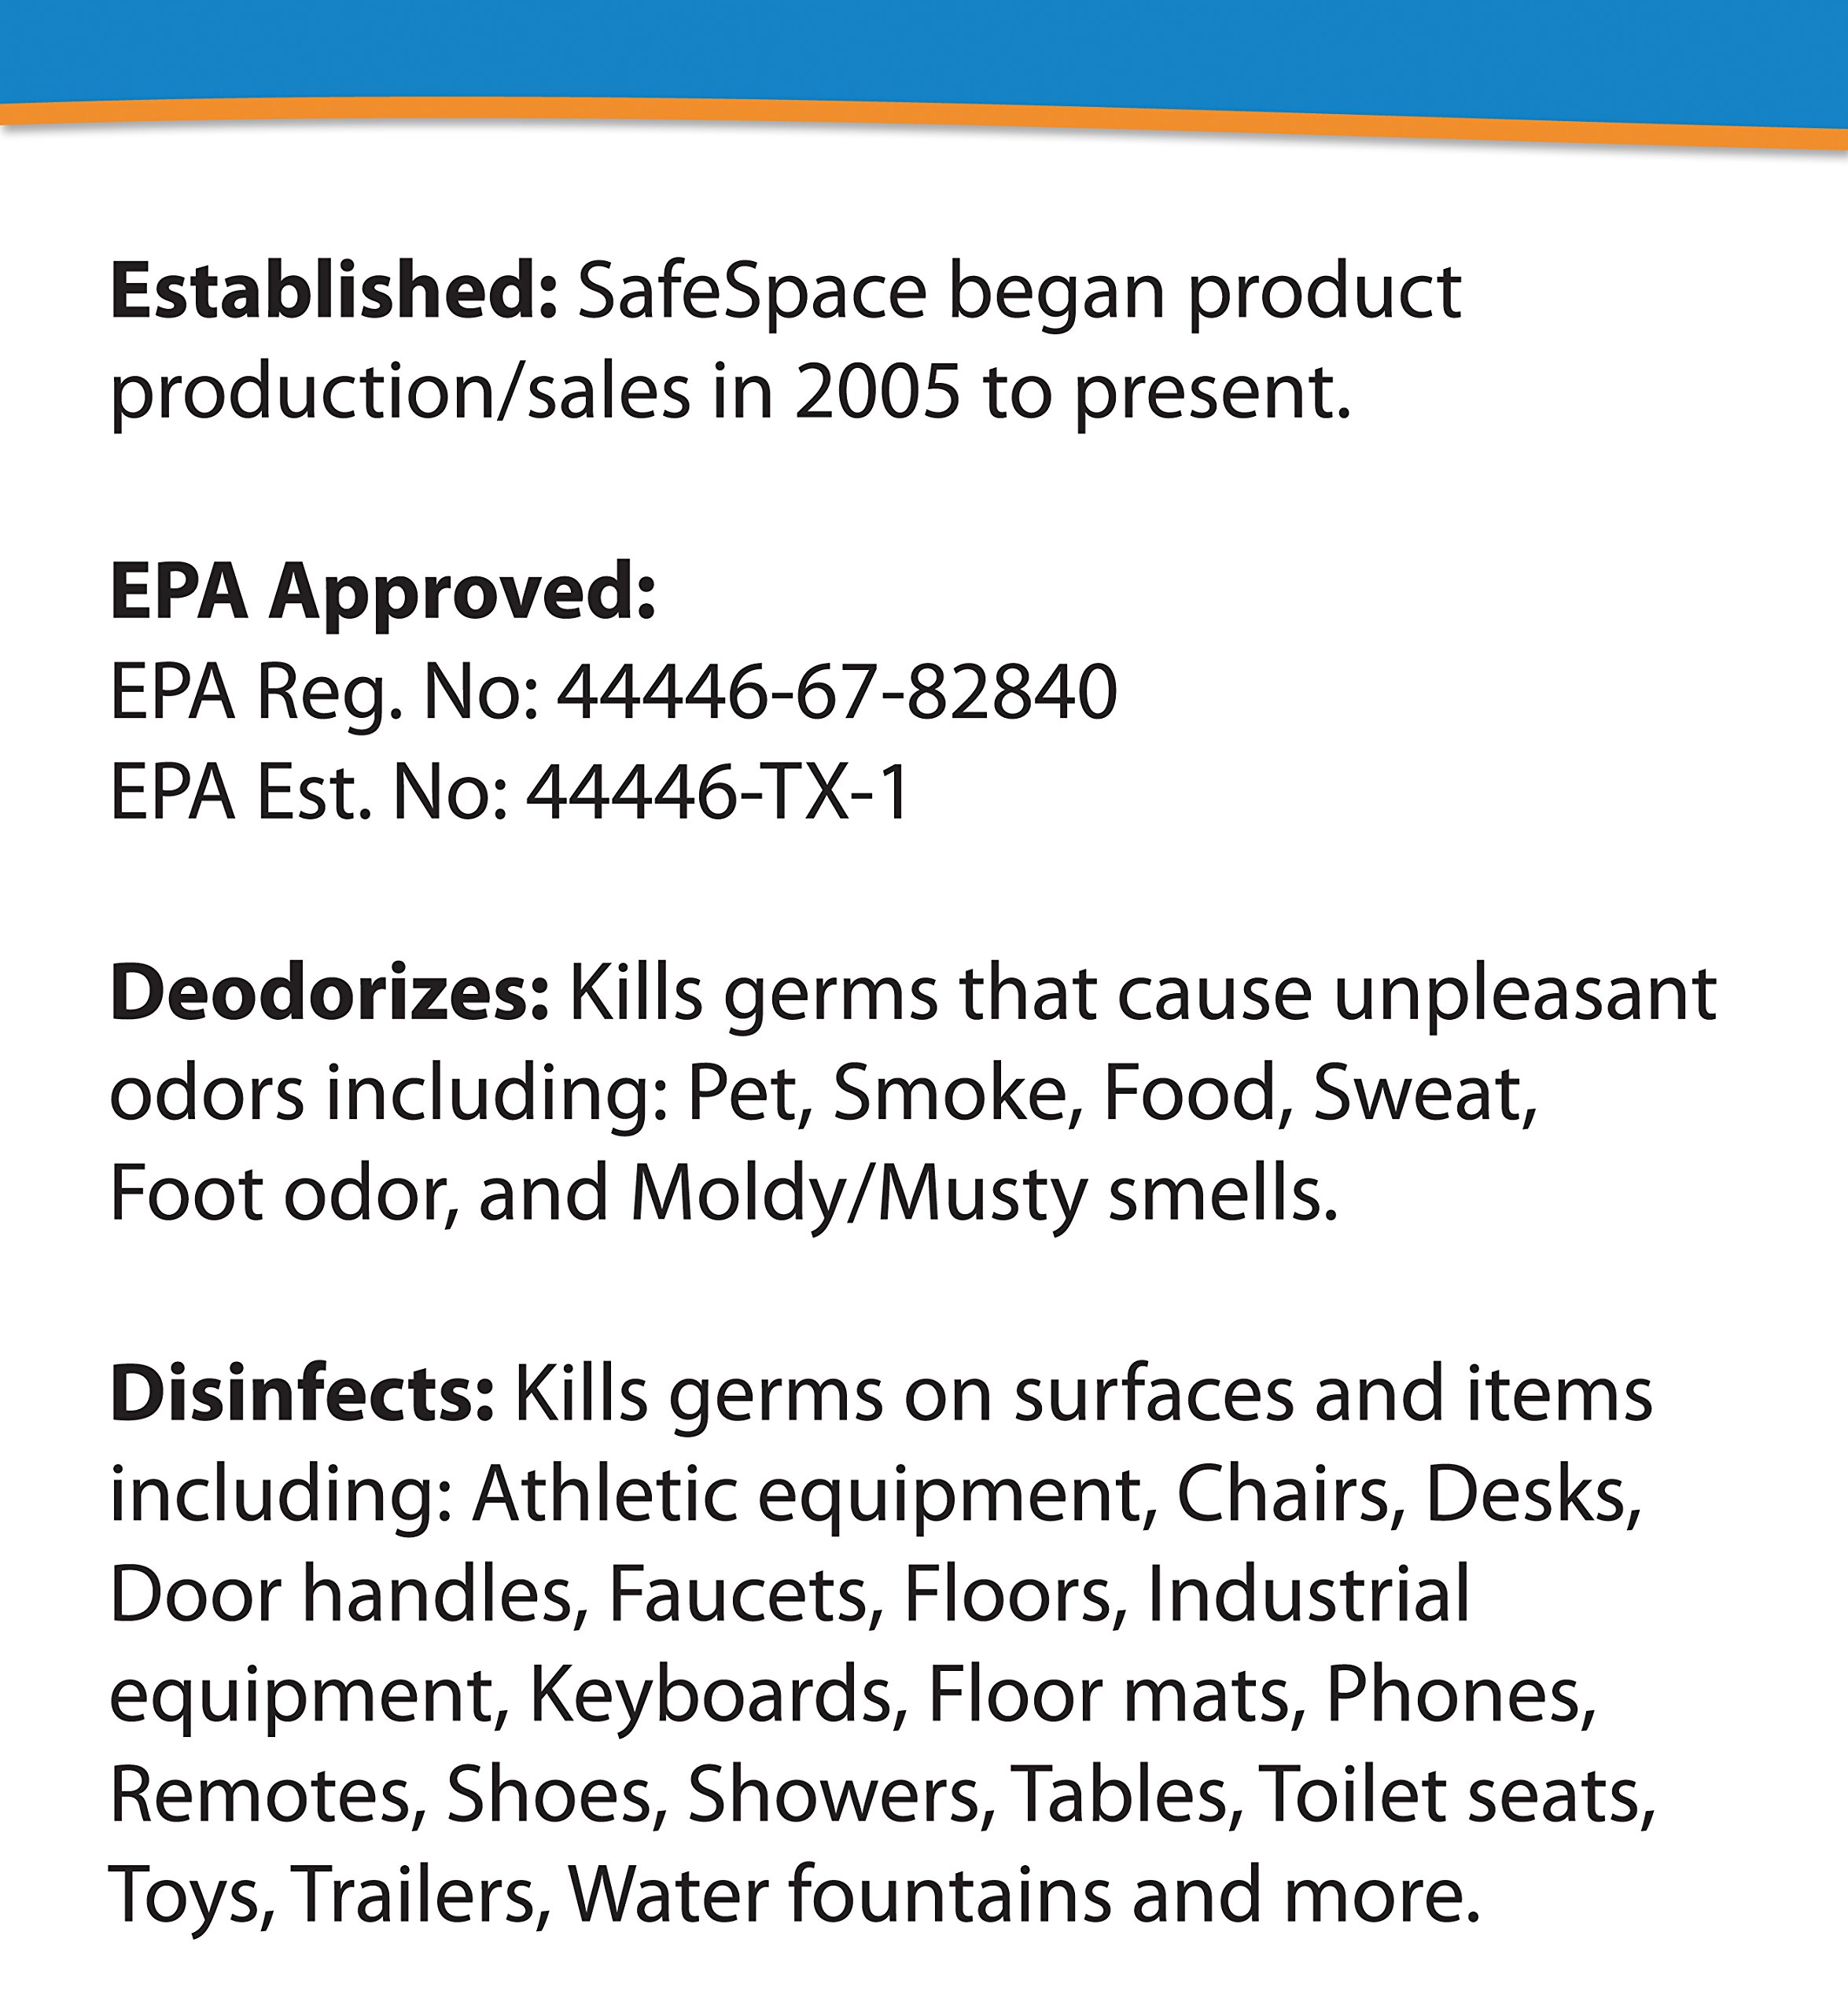 SafeSpace Disinfectant & Deodorizing Germ Fogger - Case of 12 Cans (Clean Scent) by SafeSpace (Image #2)